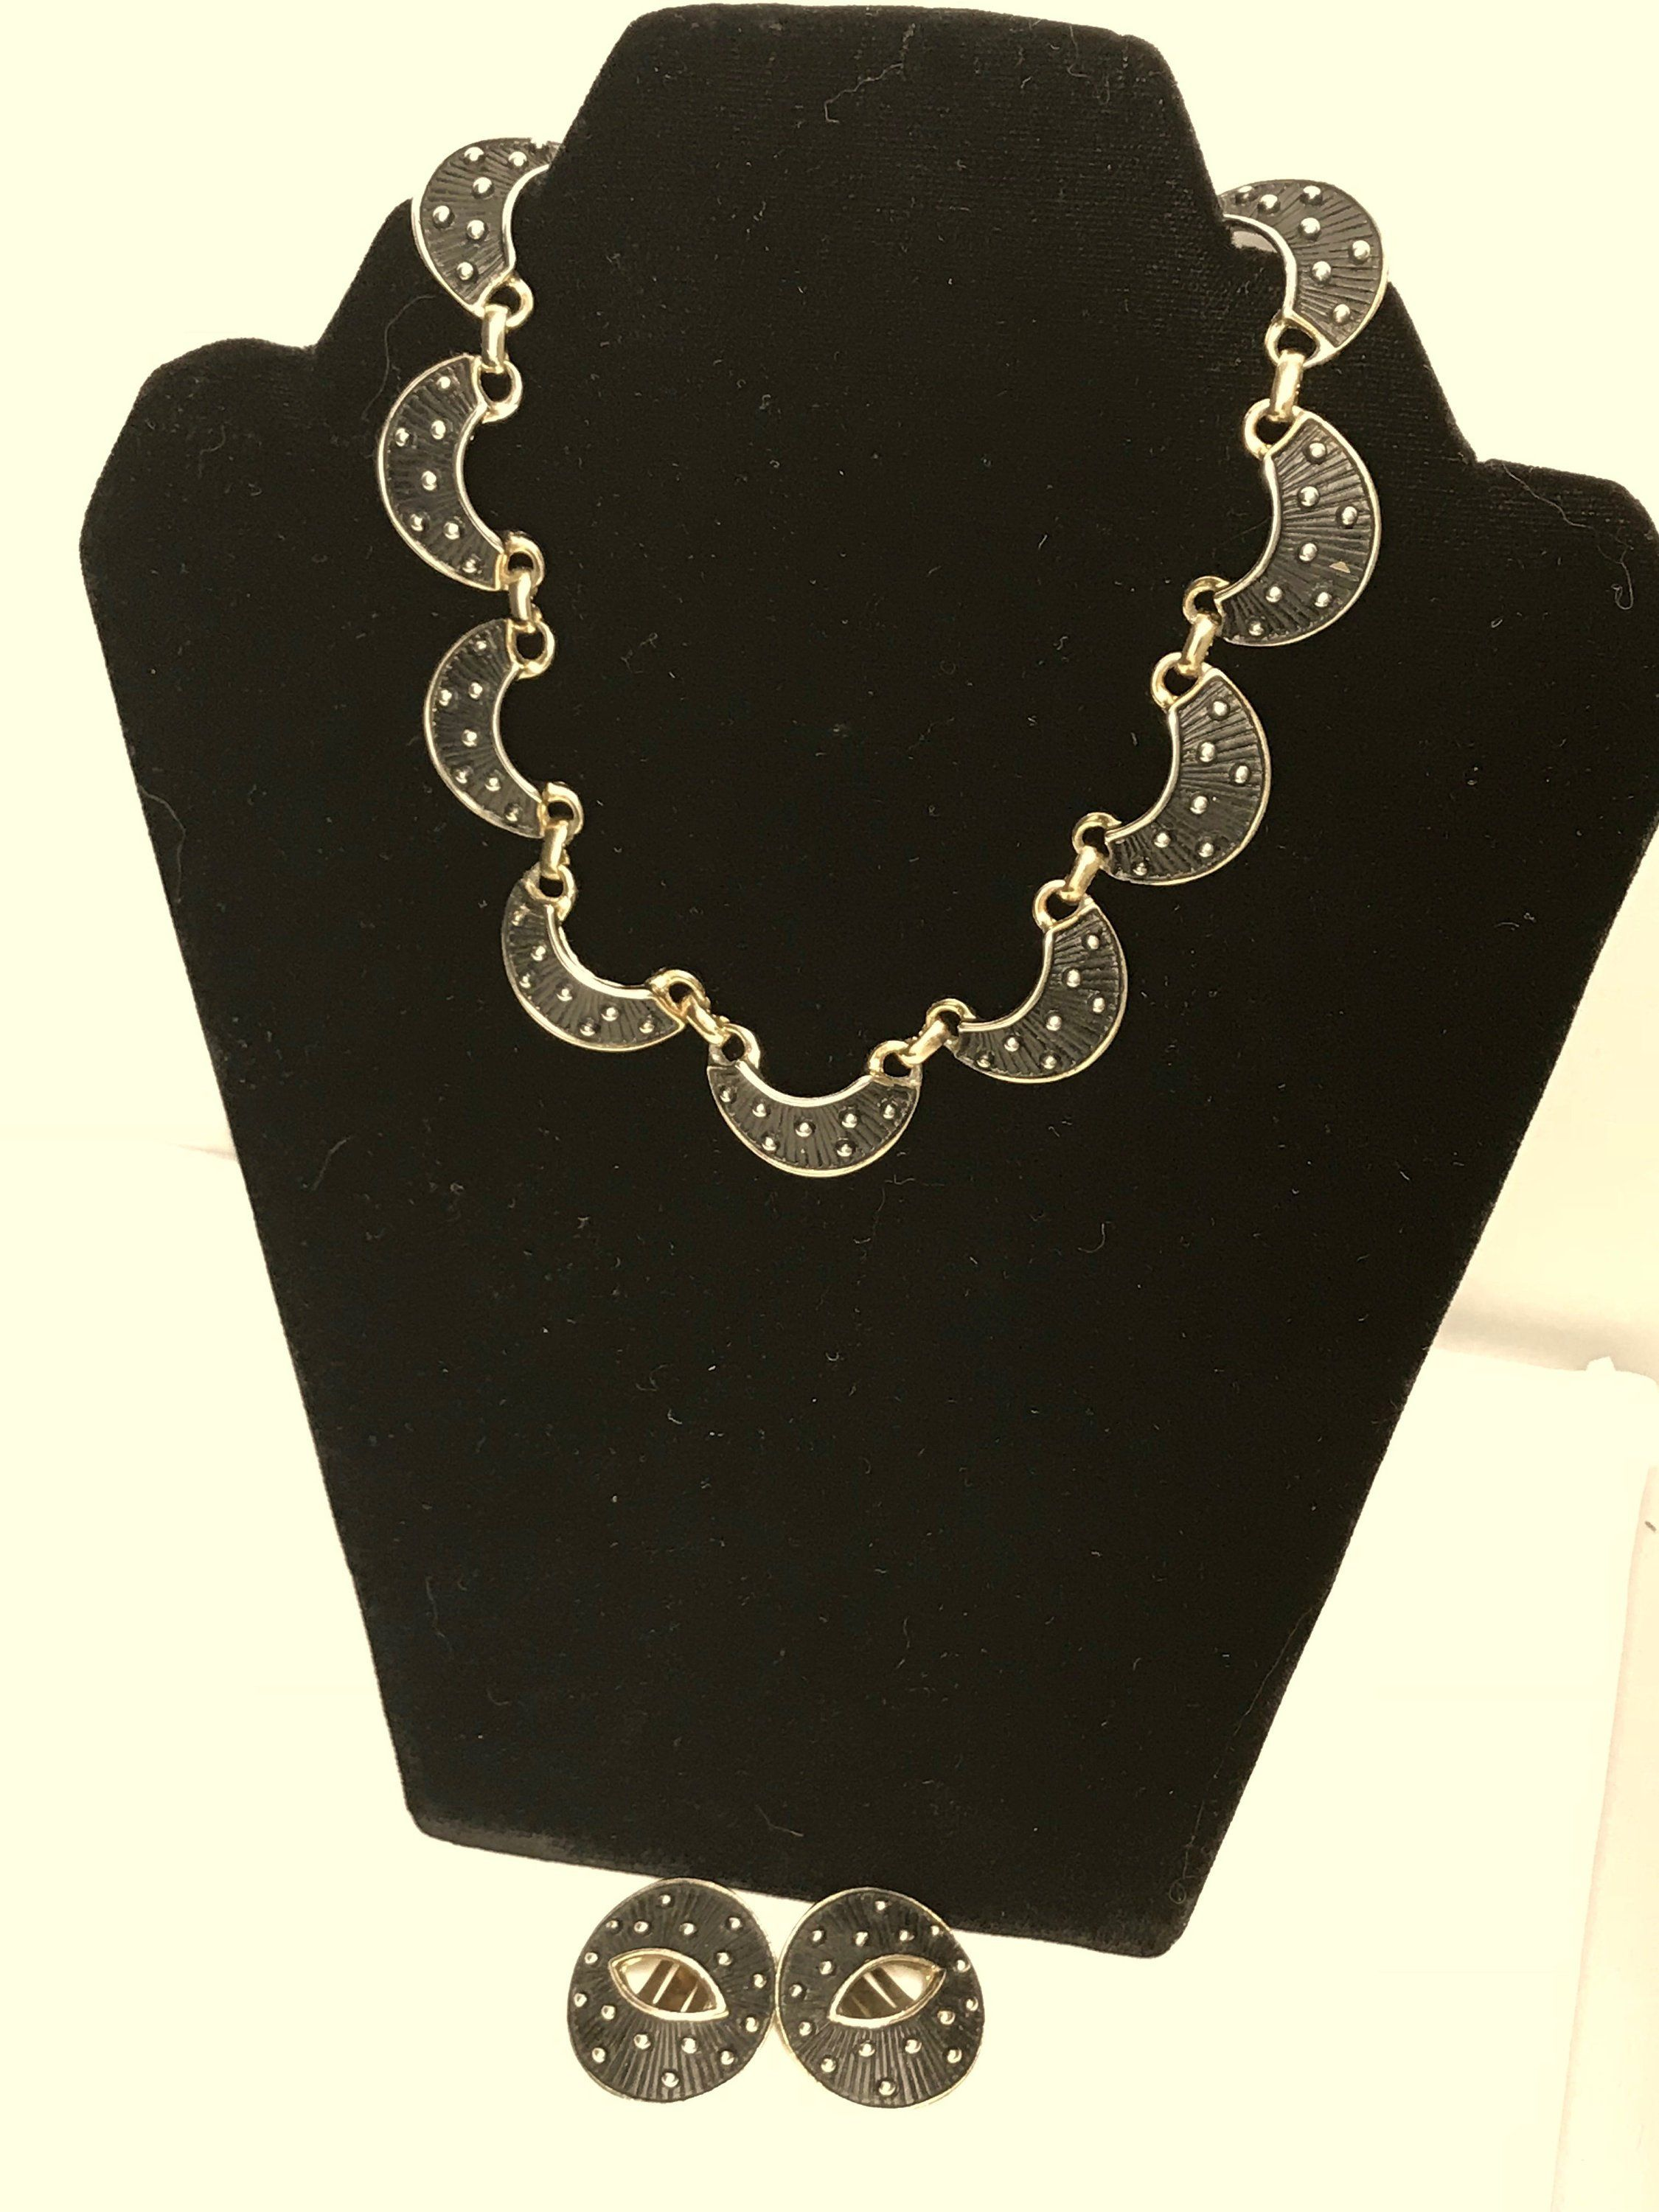 Vintage Costume Silver and Black Collar Necklace /& Earring Set Silvertone and Black Link Necklace or Choker with Clip-On Oval Earrings